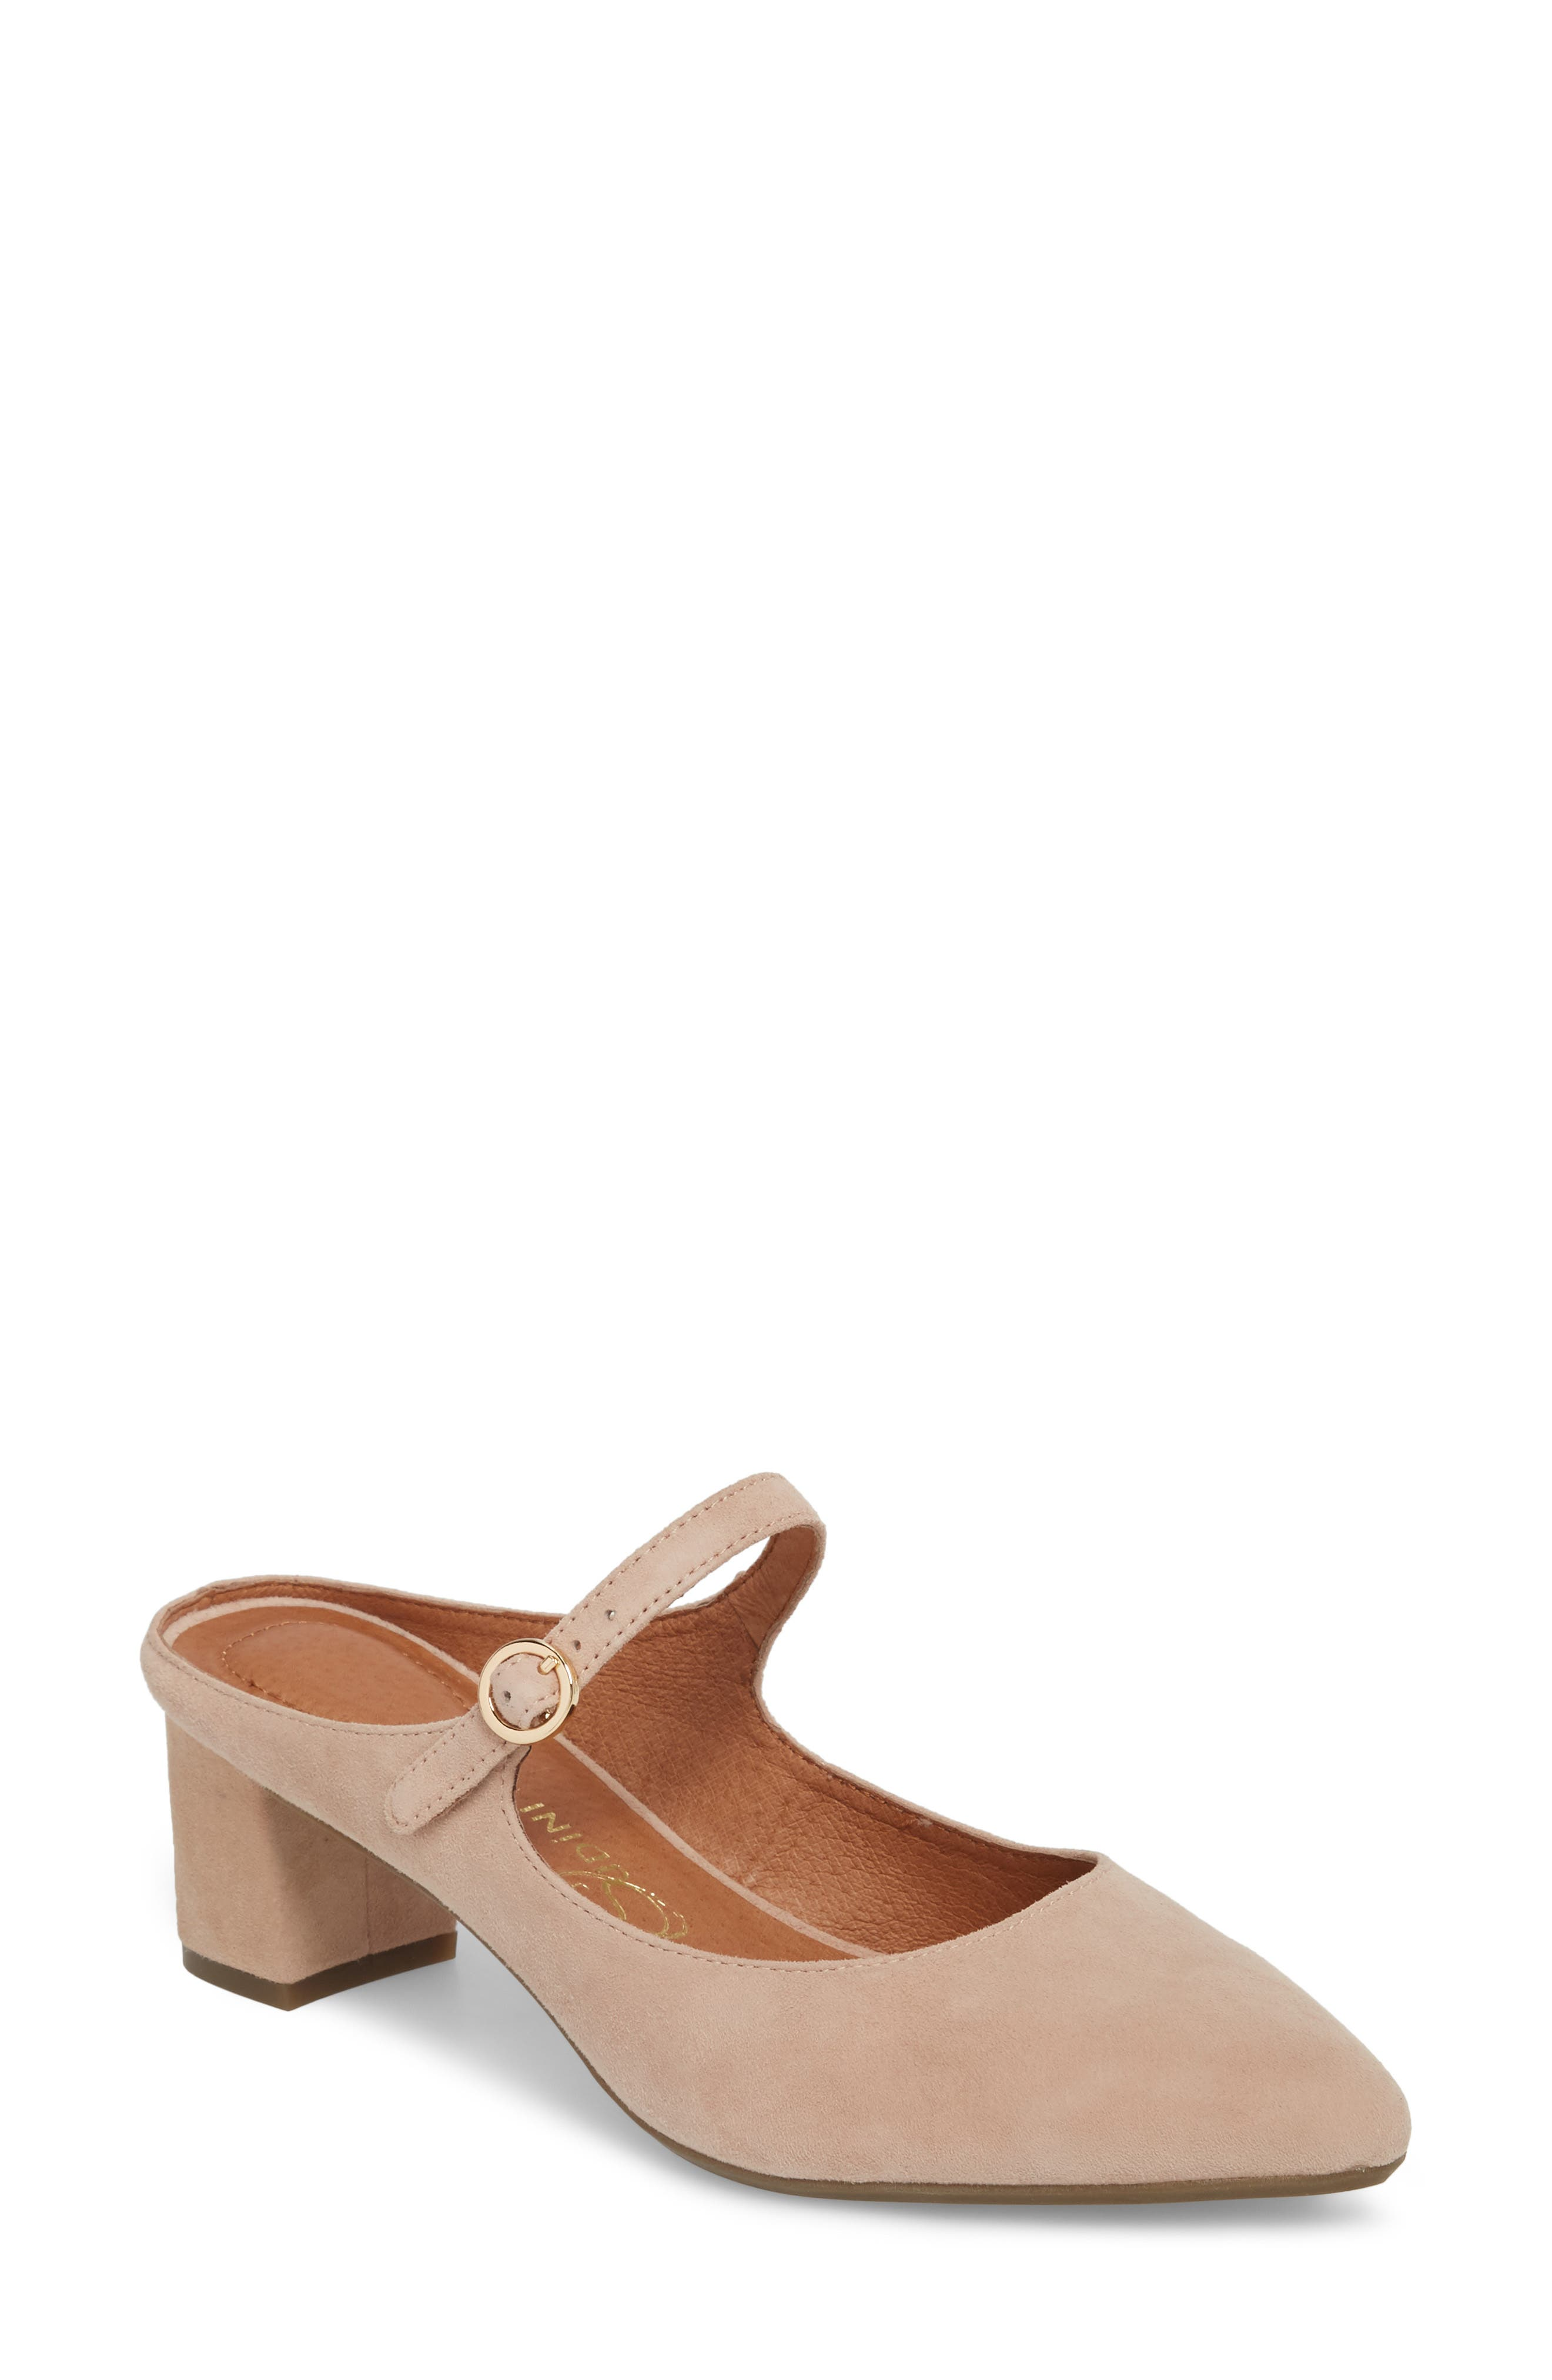 Alternate Image 1 Selected - Sudini Barletta Mary Jane Mule (Women)